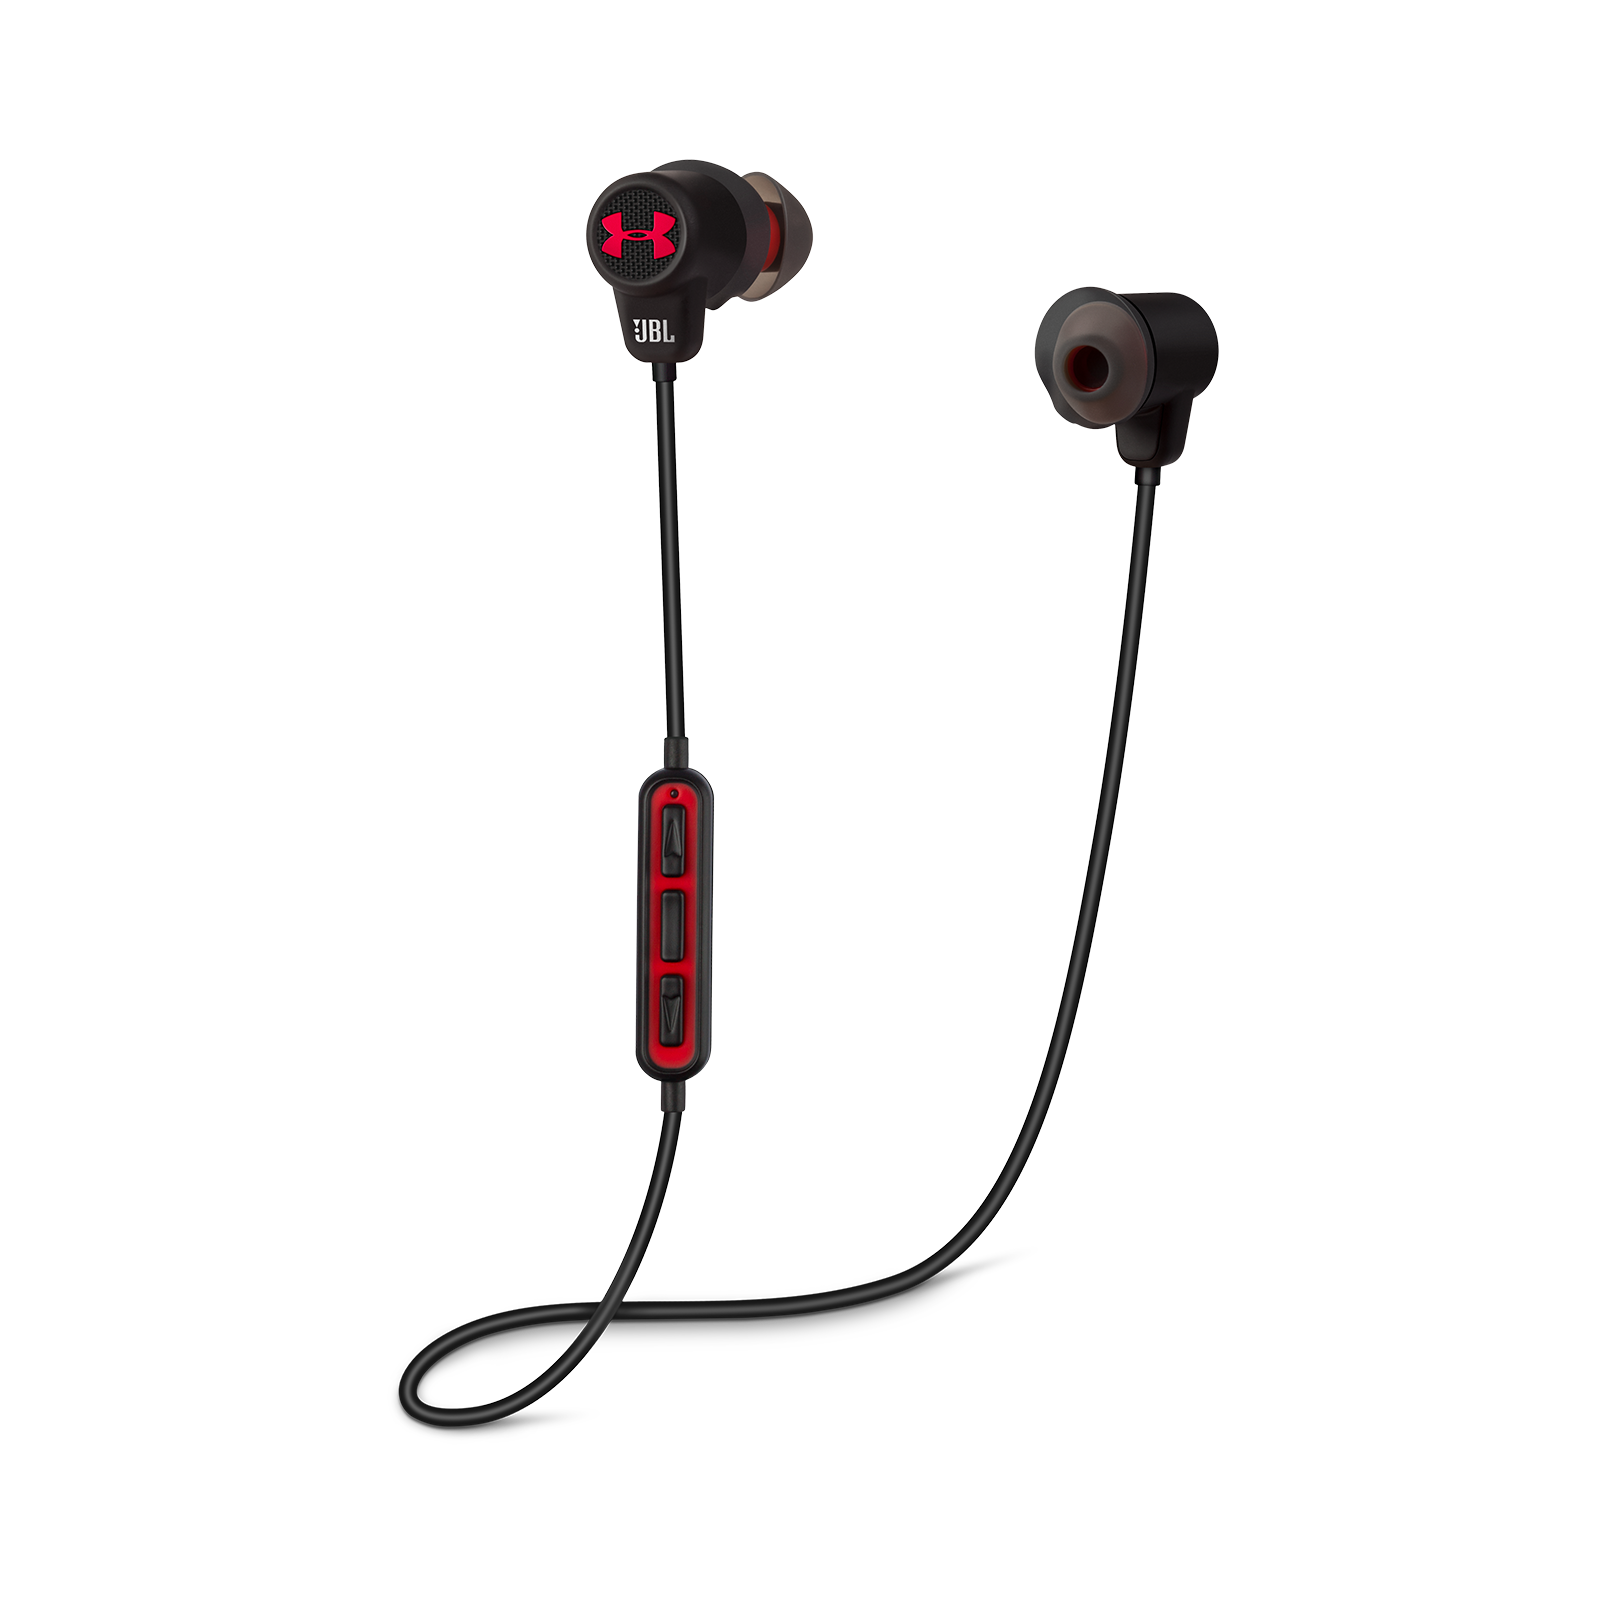 a1dfe17149d Under Armour Sport Wireless | Wireless in-ear headphones for athletes